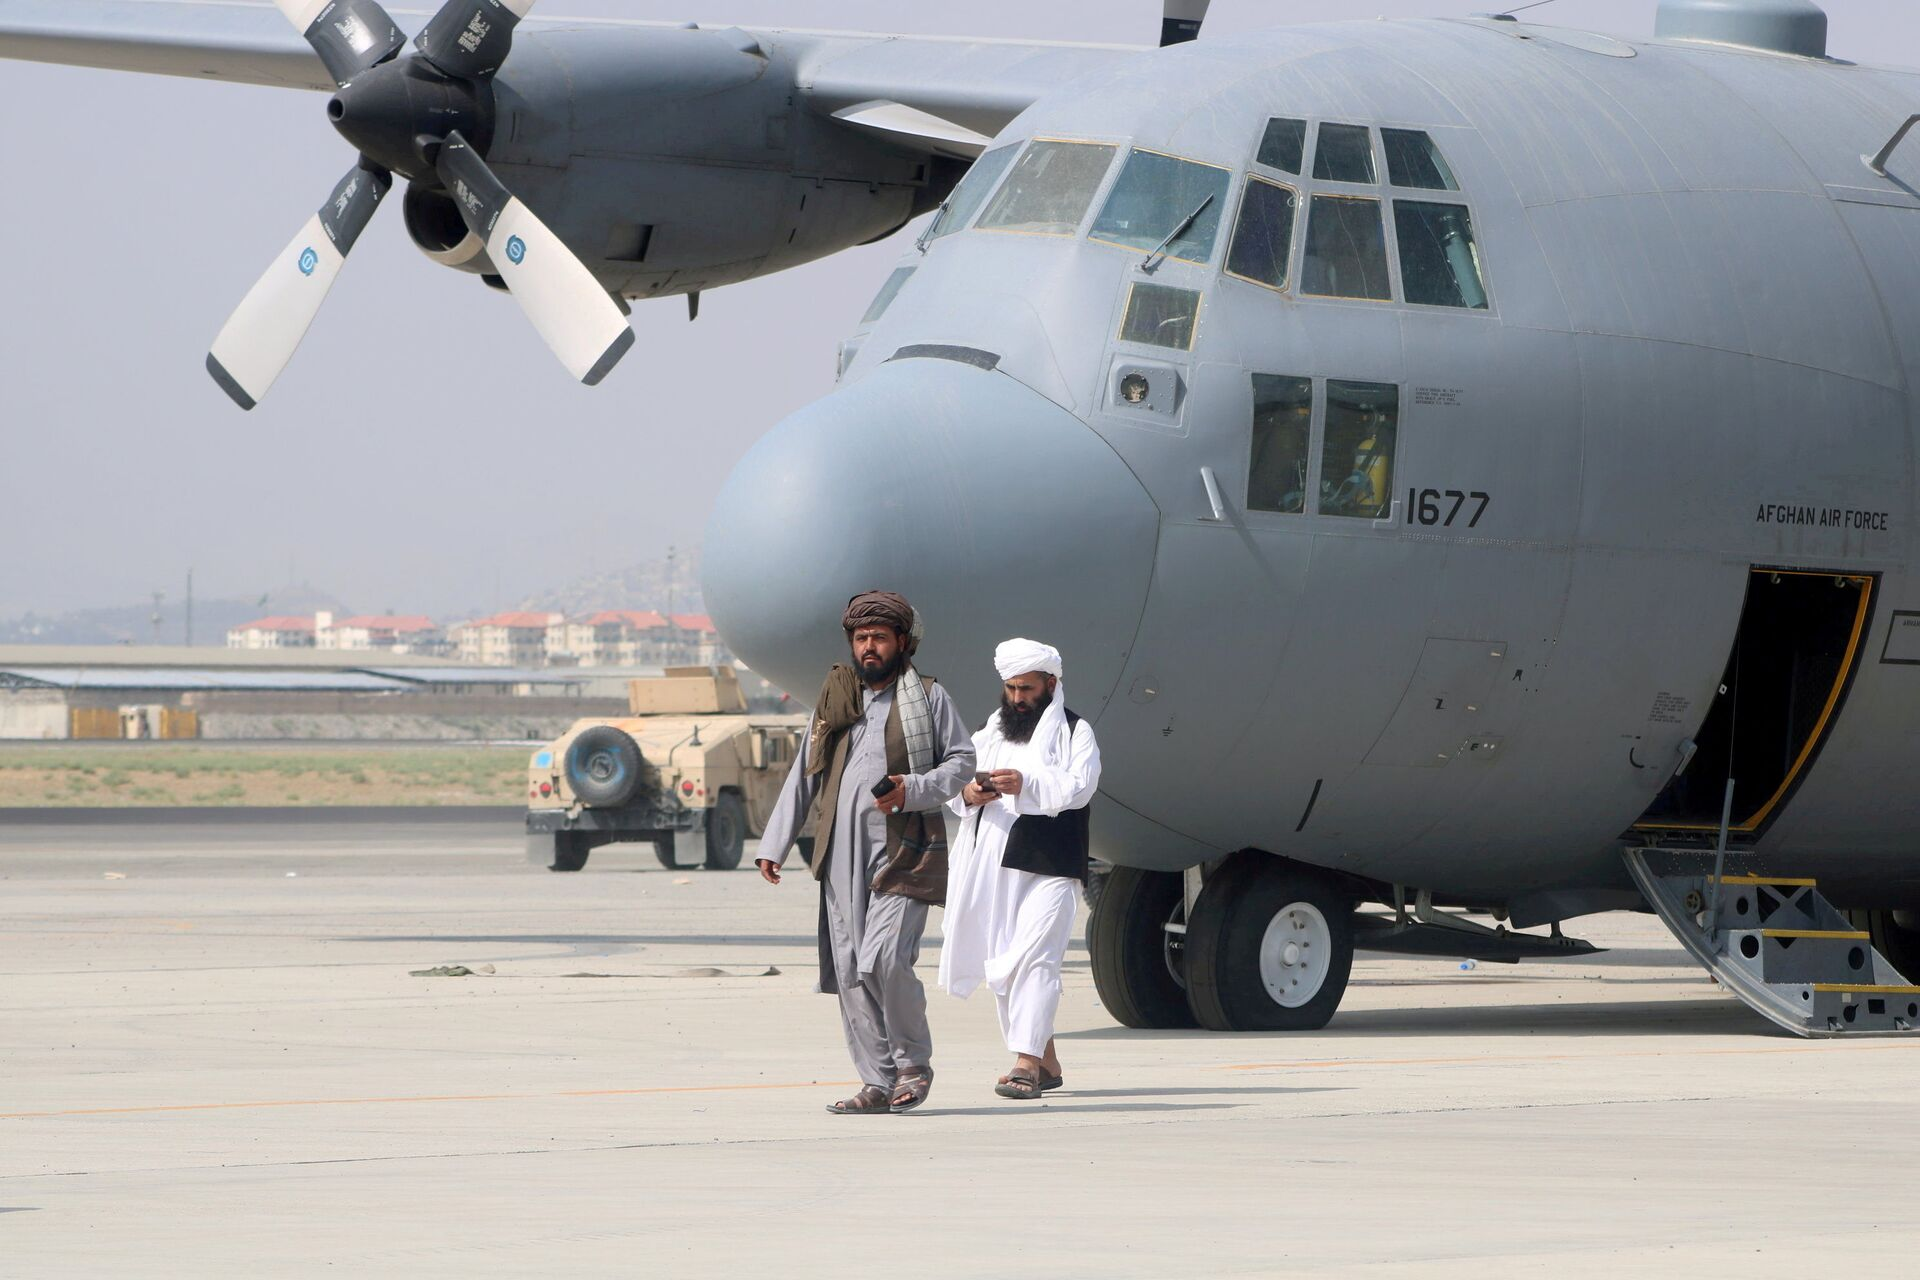 Taliban walk in front of a military airplane a day after the U.S. troops withdrawal from Hamid Karzai International Airport in Kabul, Afghanistan August 31, 2021. - Sputnik International, 1920, 07.09.2021